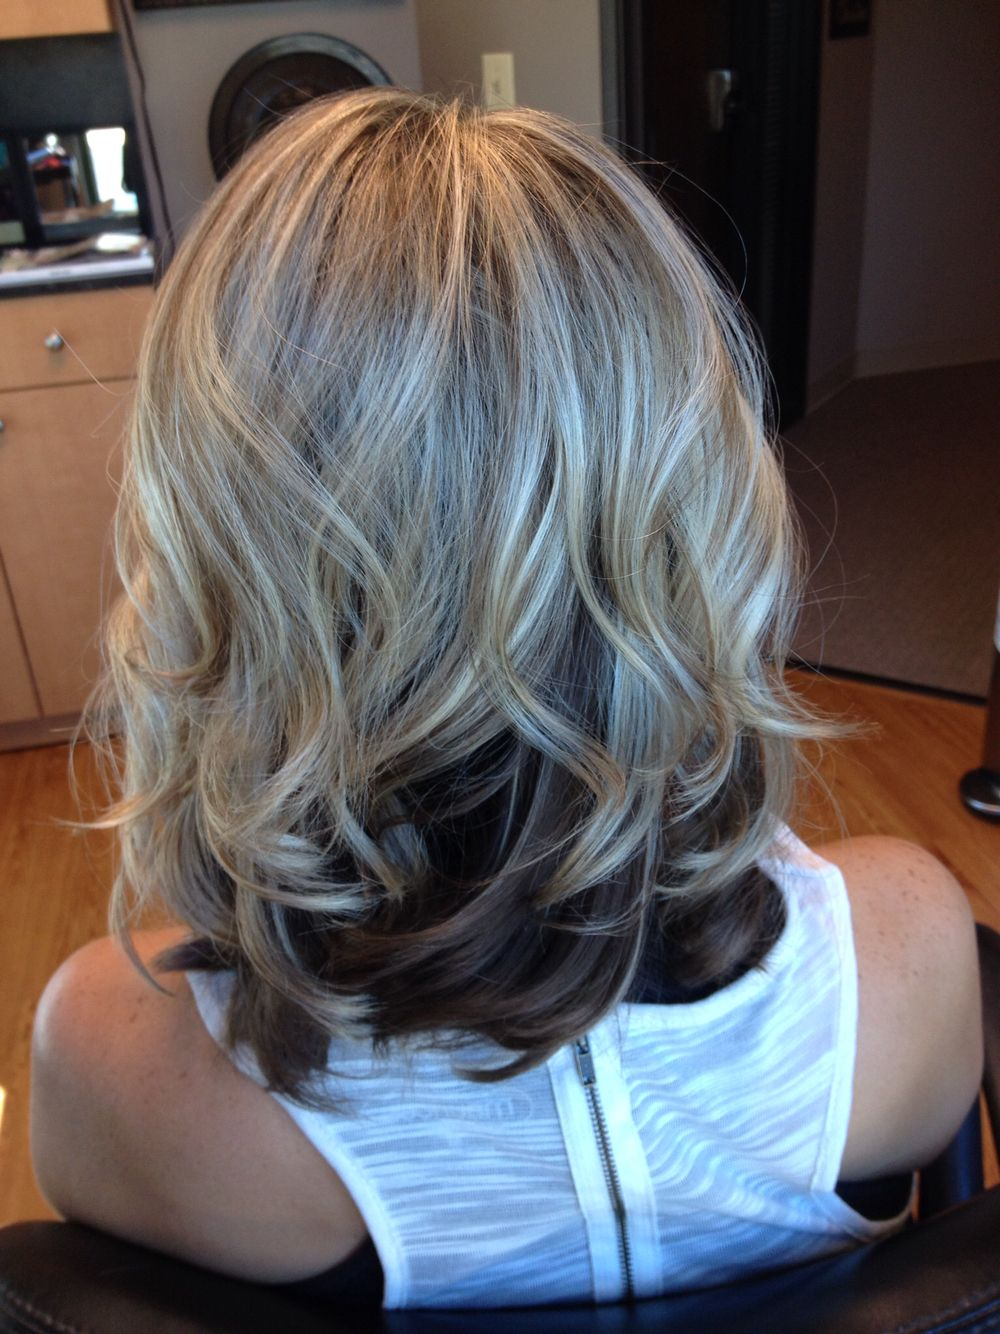 Blonde Top Dark Underneath Hair By Melissa Lobaito